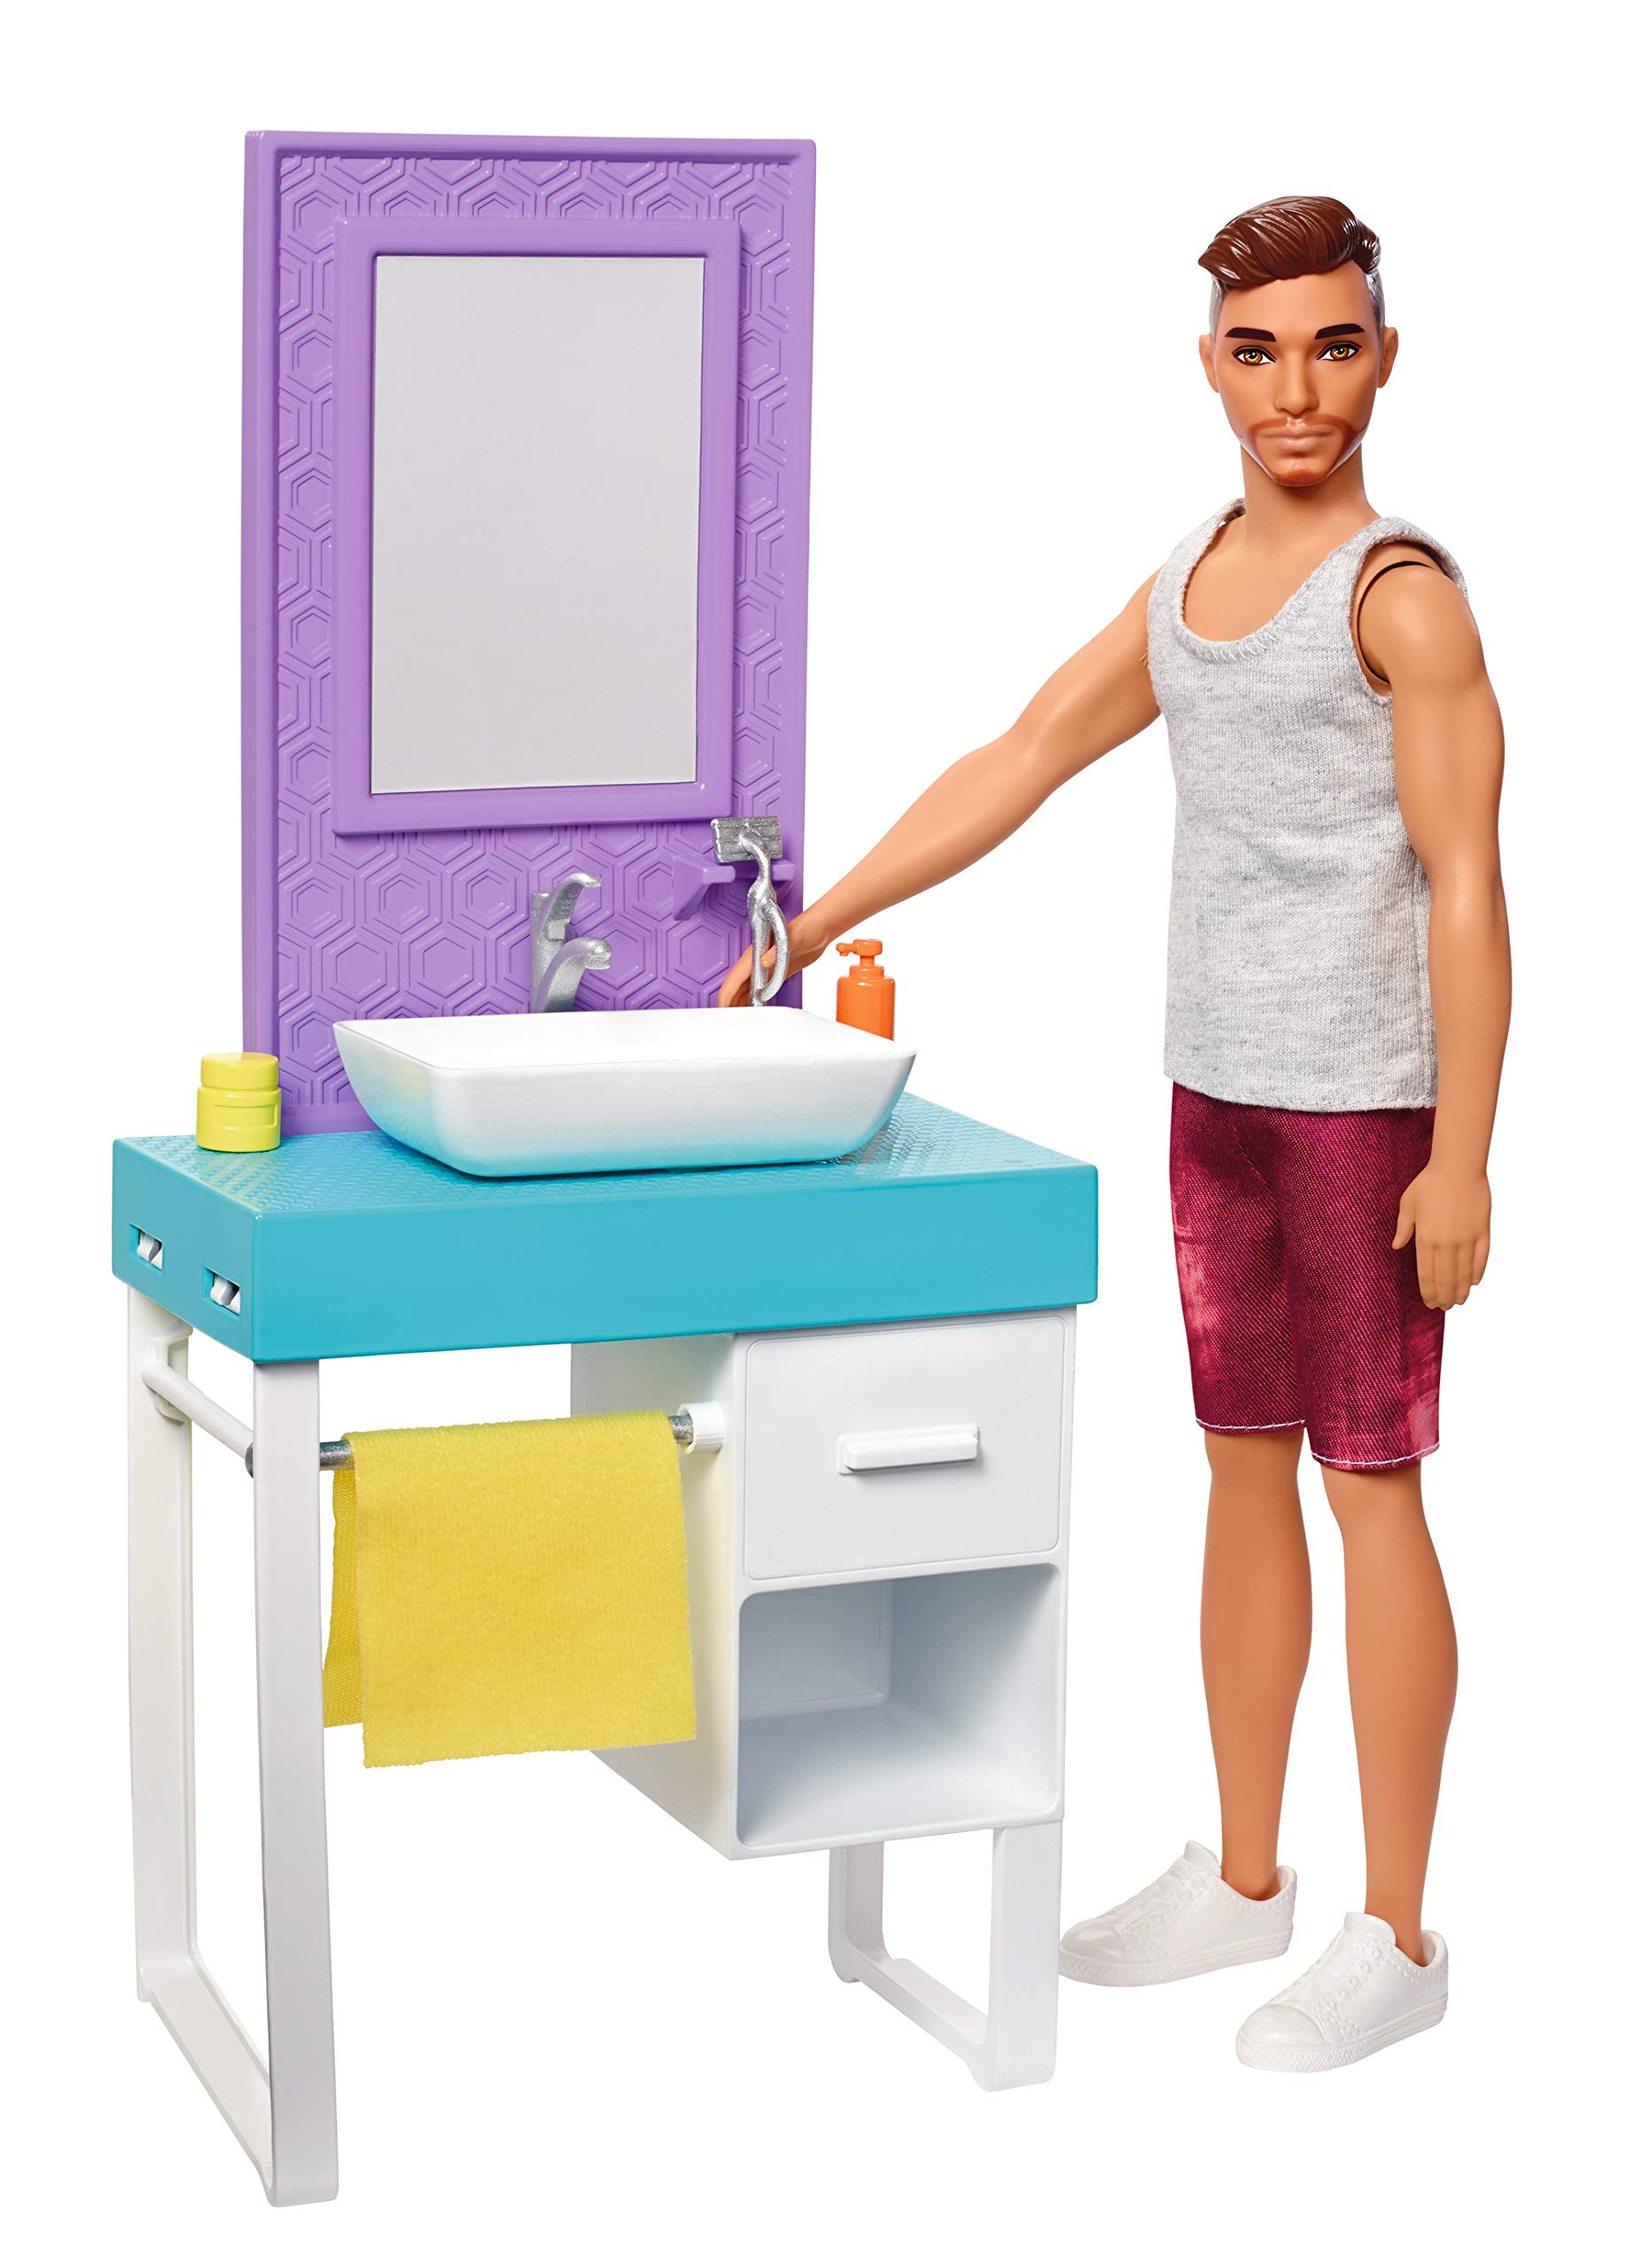 Barbie FYK53 Bathroom-Themed Playset, with Shaving Ken Doll and Sink/Vanity, Multicolored